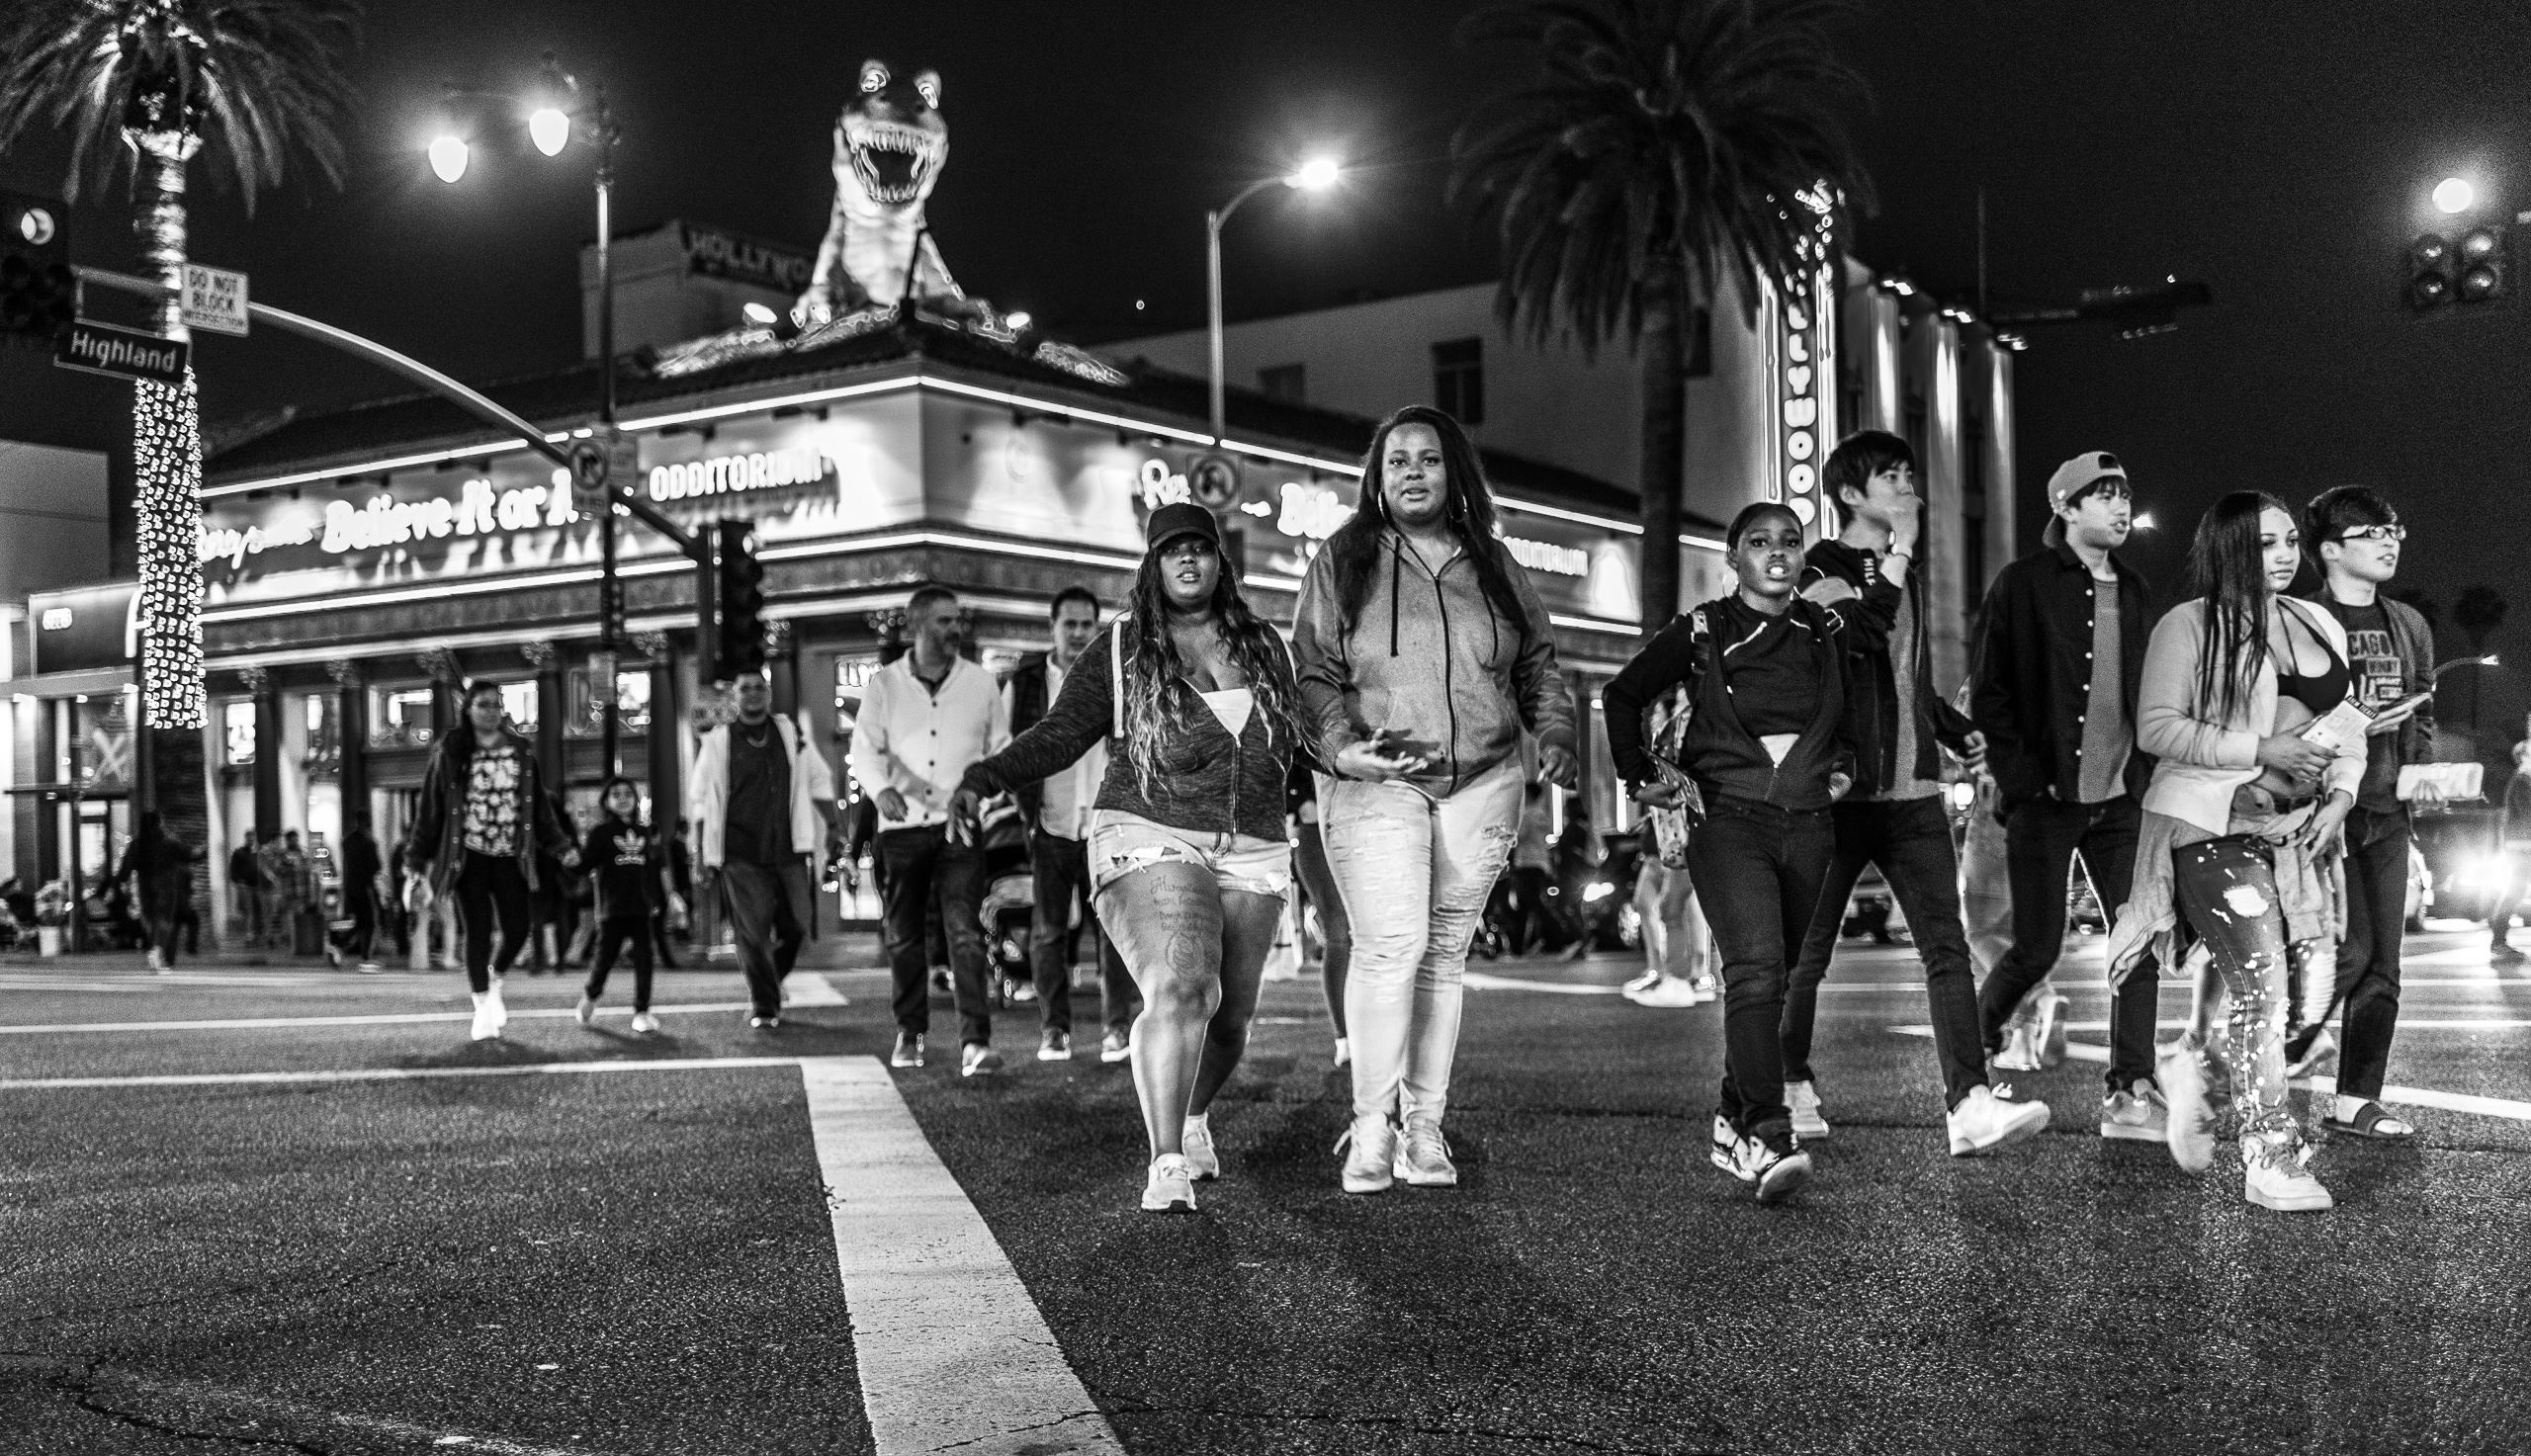 middle of the 4-way crossing at Hollywood Blvd & Highland Blvd. Camera is pointed southeast, and photographs a group of people diagonally crossing to the northwest corner of the intersection